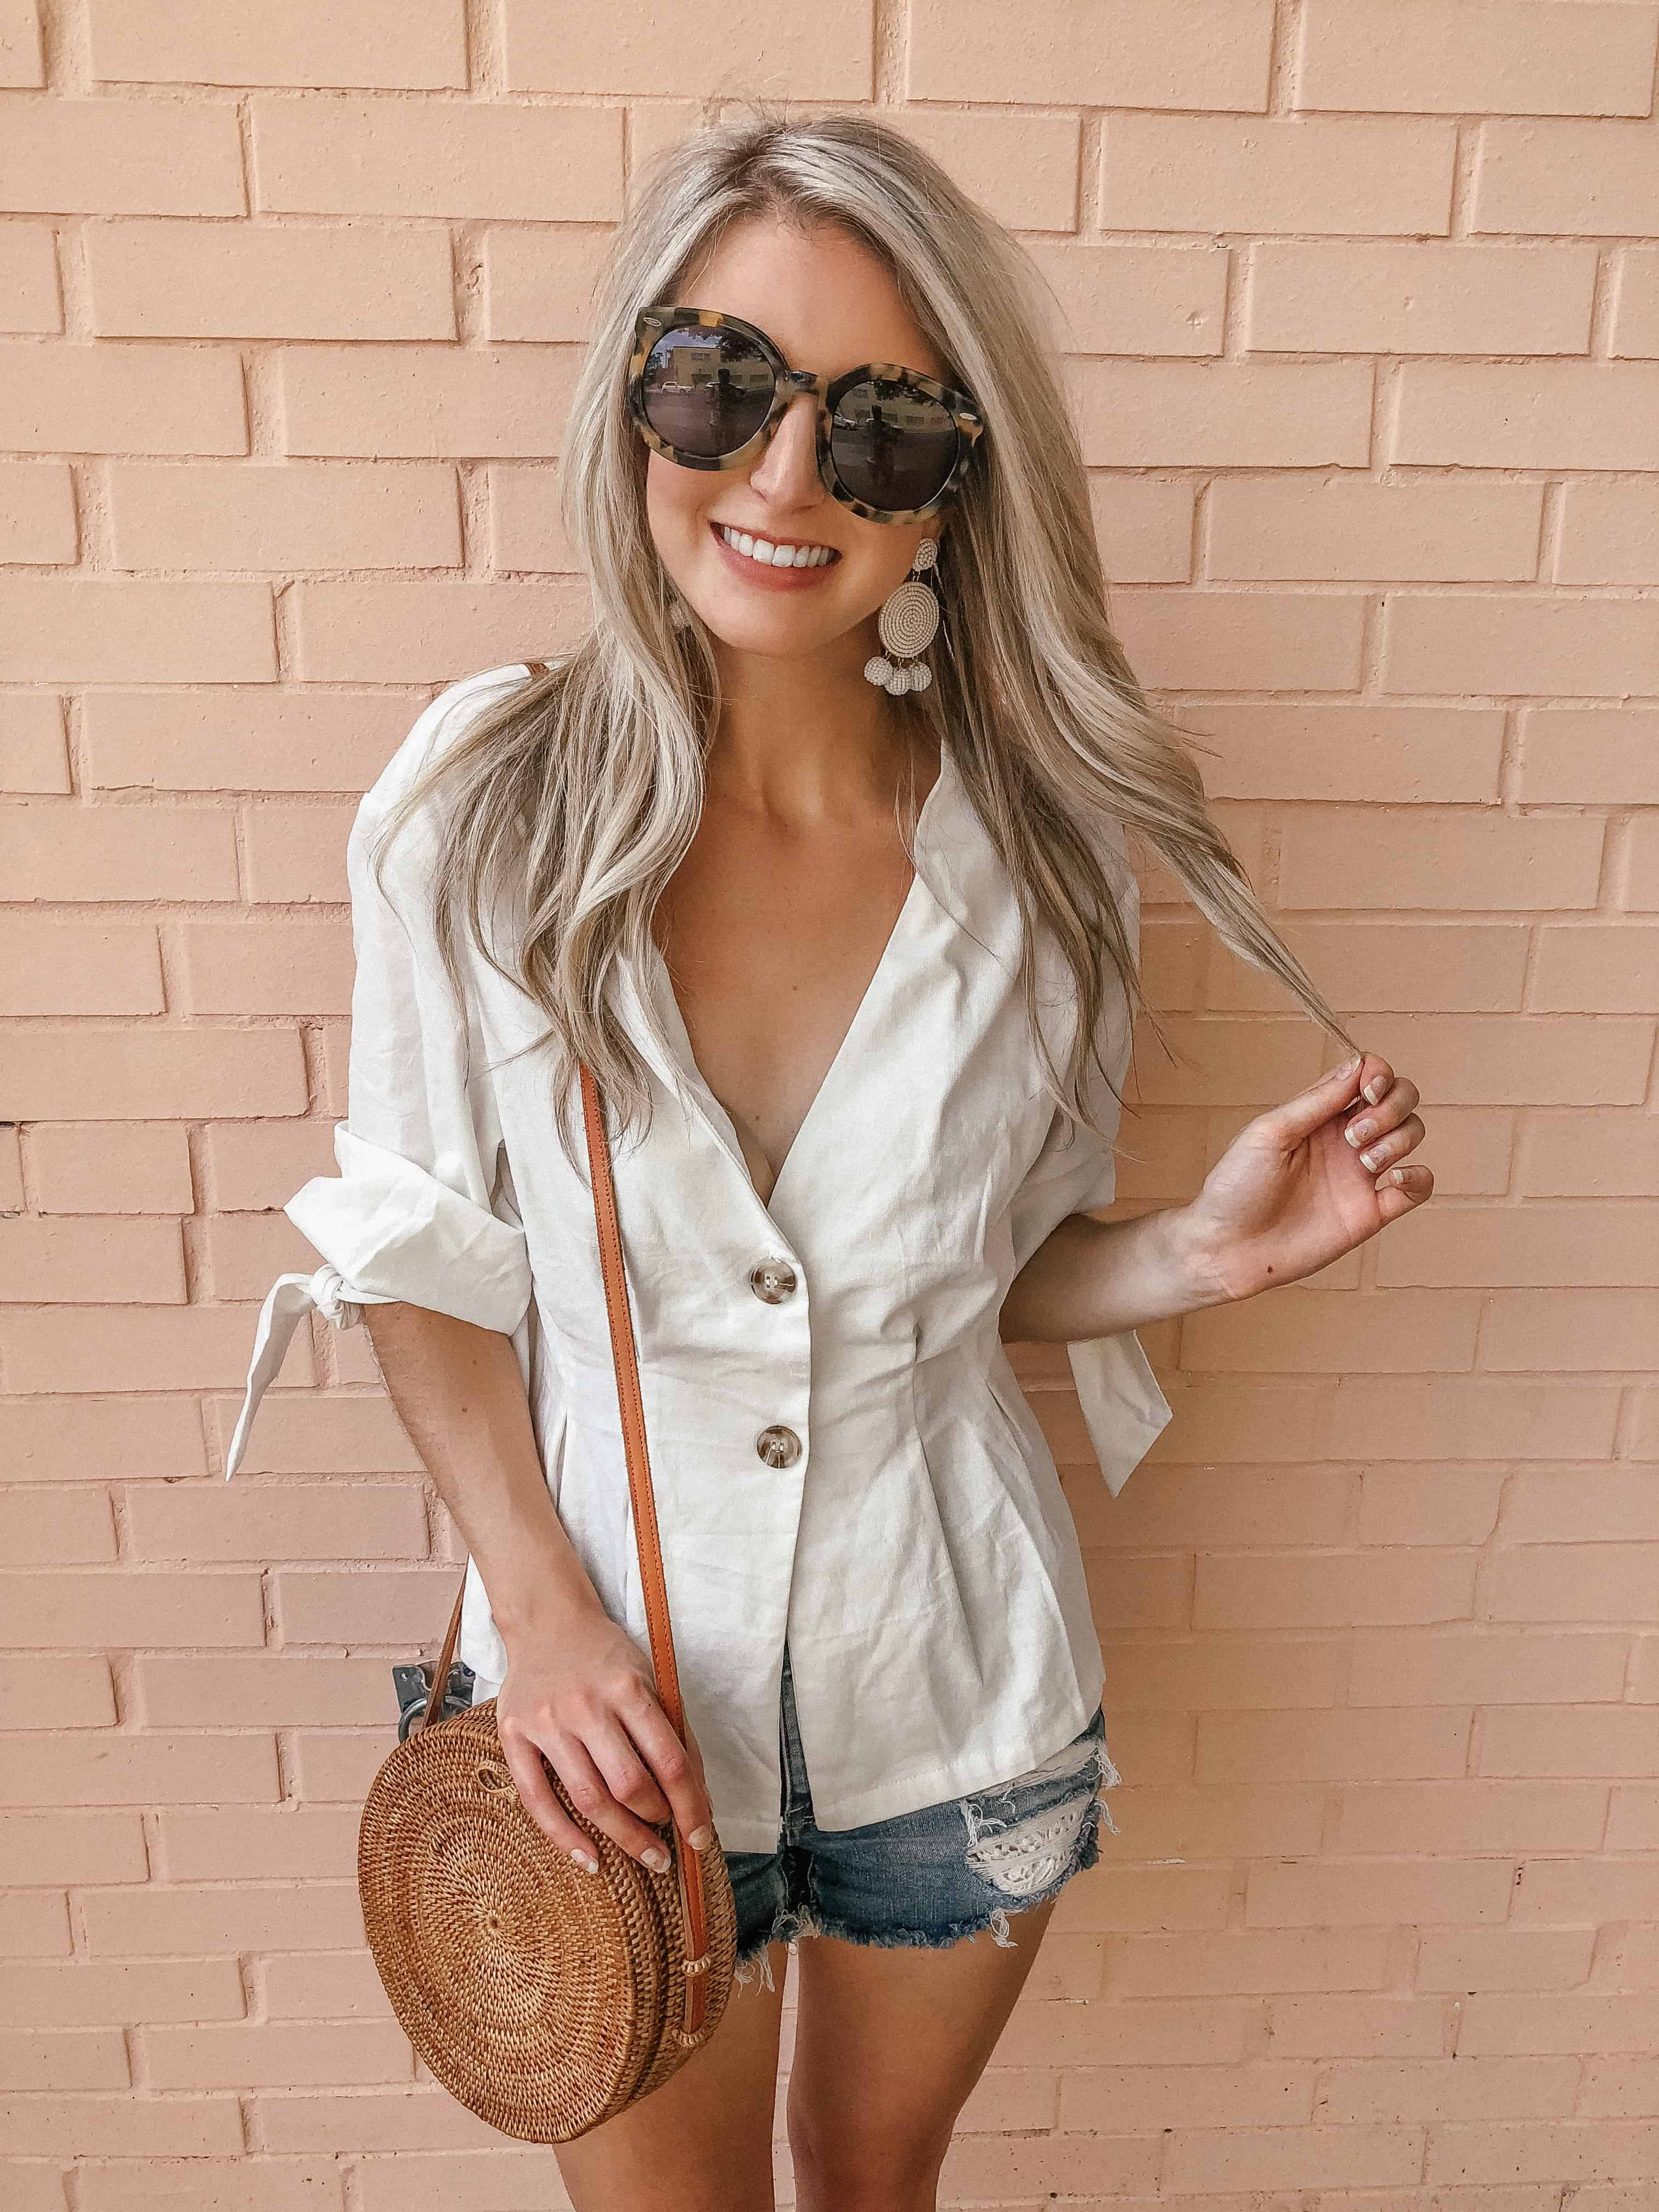 button front top, summer outfit, summer top, button front, button front top outfit, button up shirt outfit, button up shirt, button up shirt outfit casual, button up blouse, summer top, summer tops women, white top outfit, white top outfit summer, white top summer, Prada & Pearls, fashion blogger